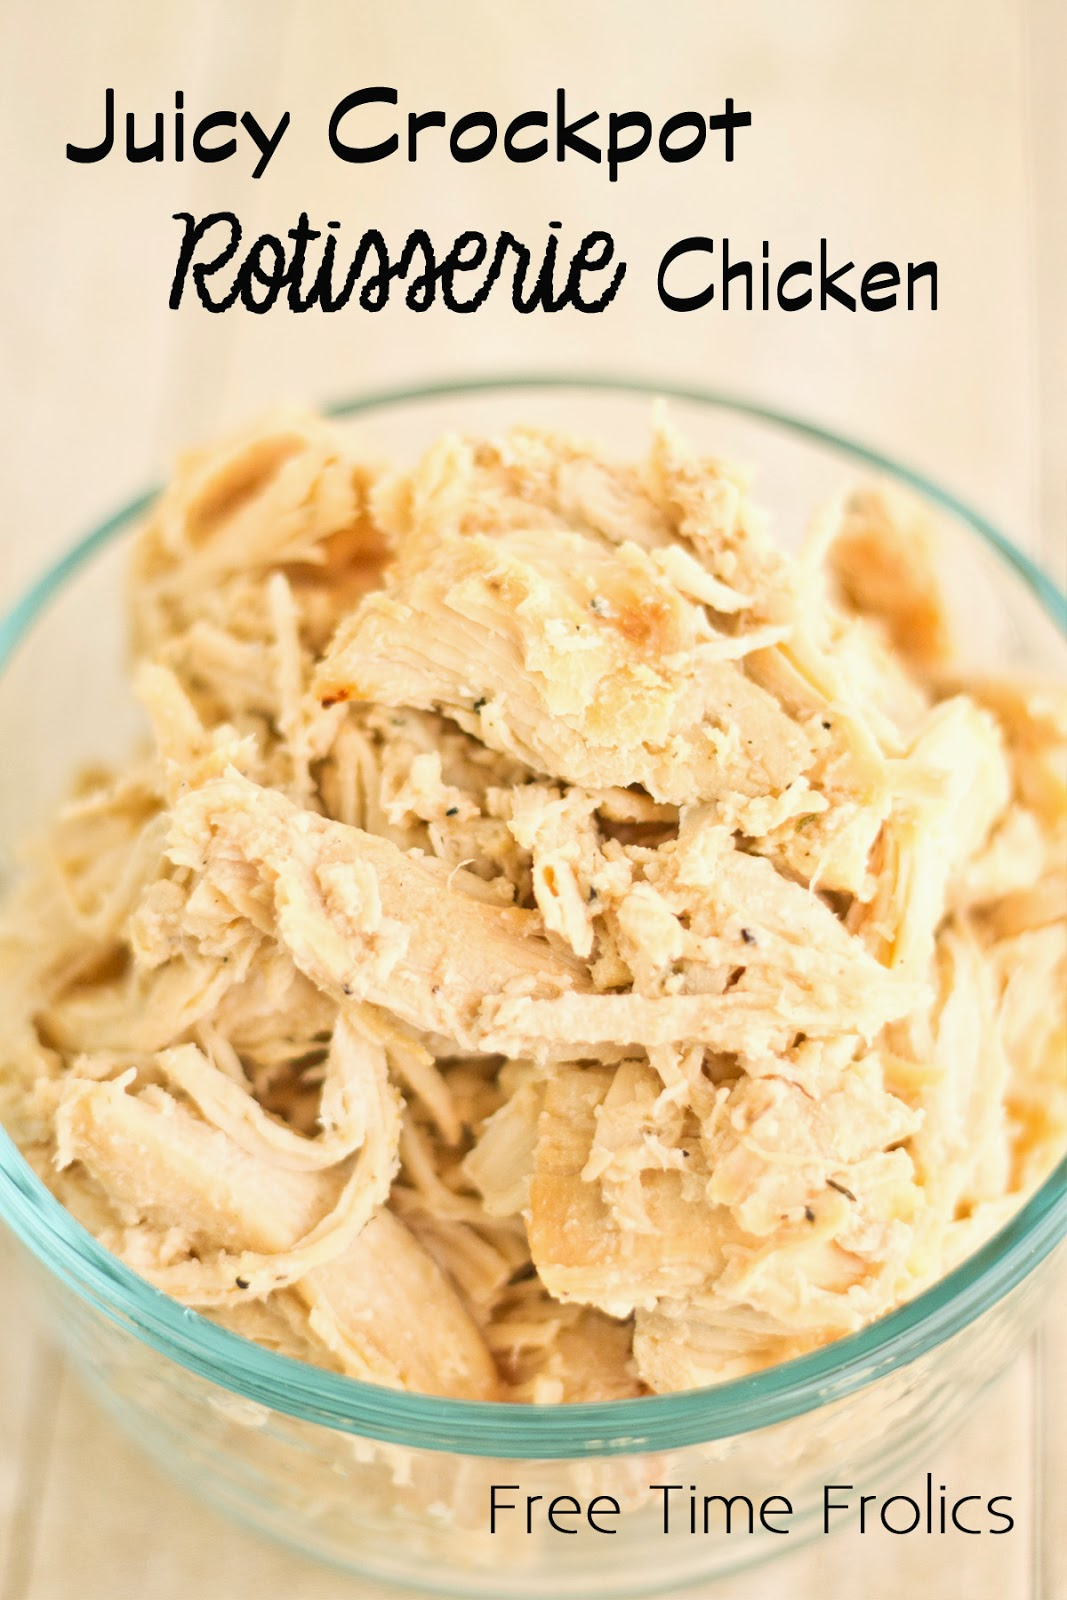 Crockpot Rotisserie Chicken Recipe www.freetimefrolics.com